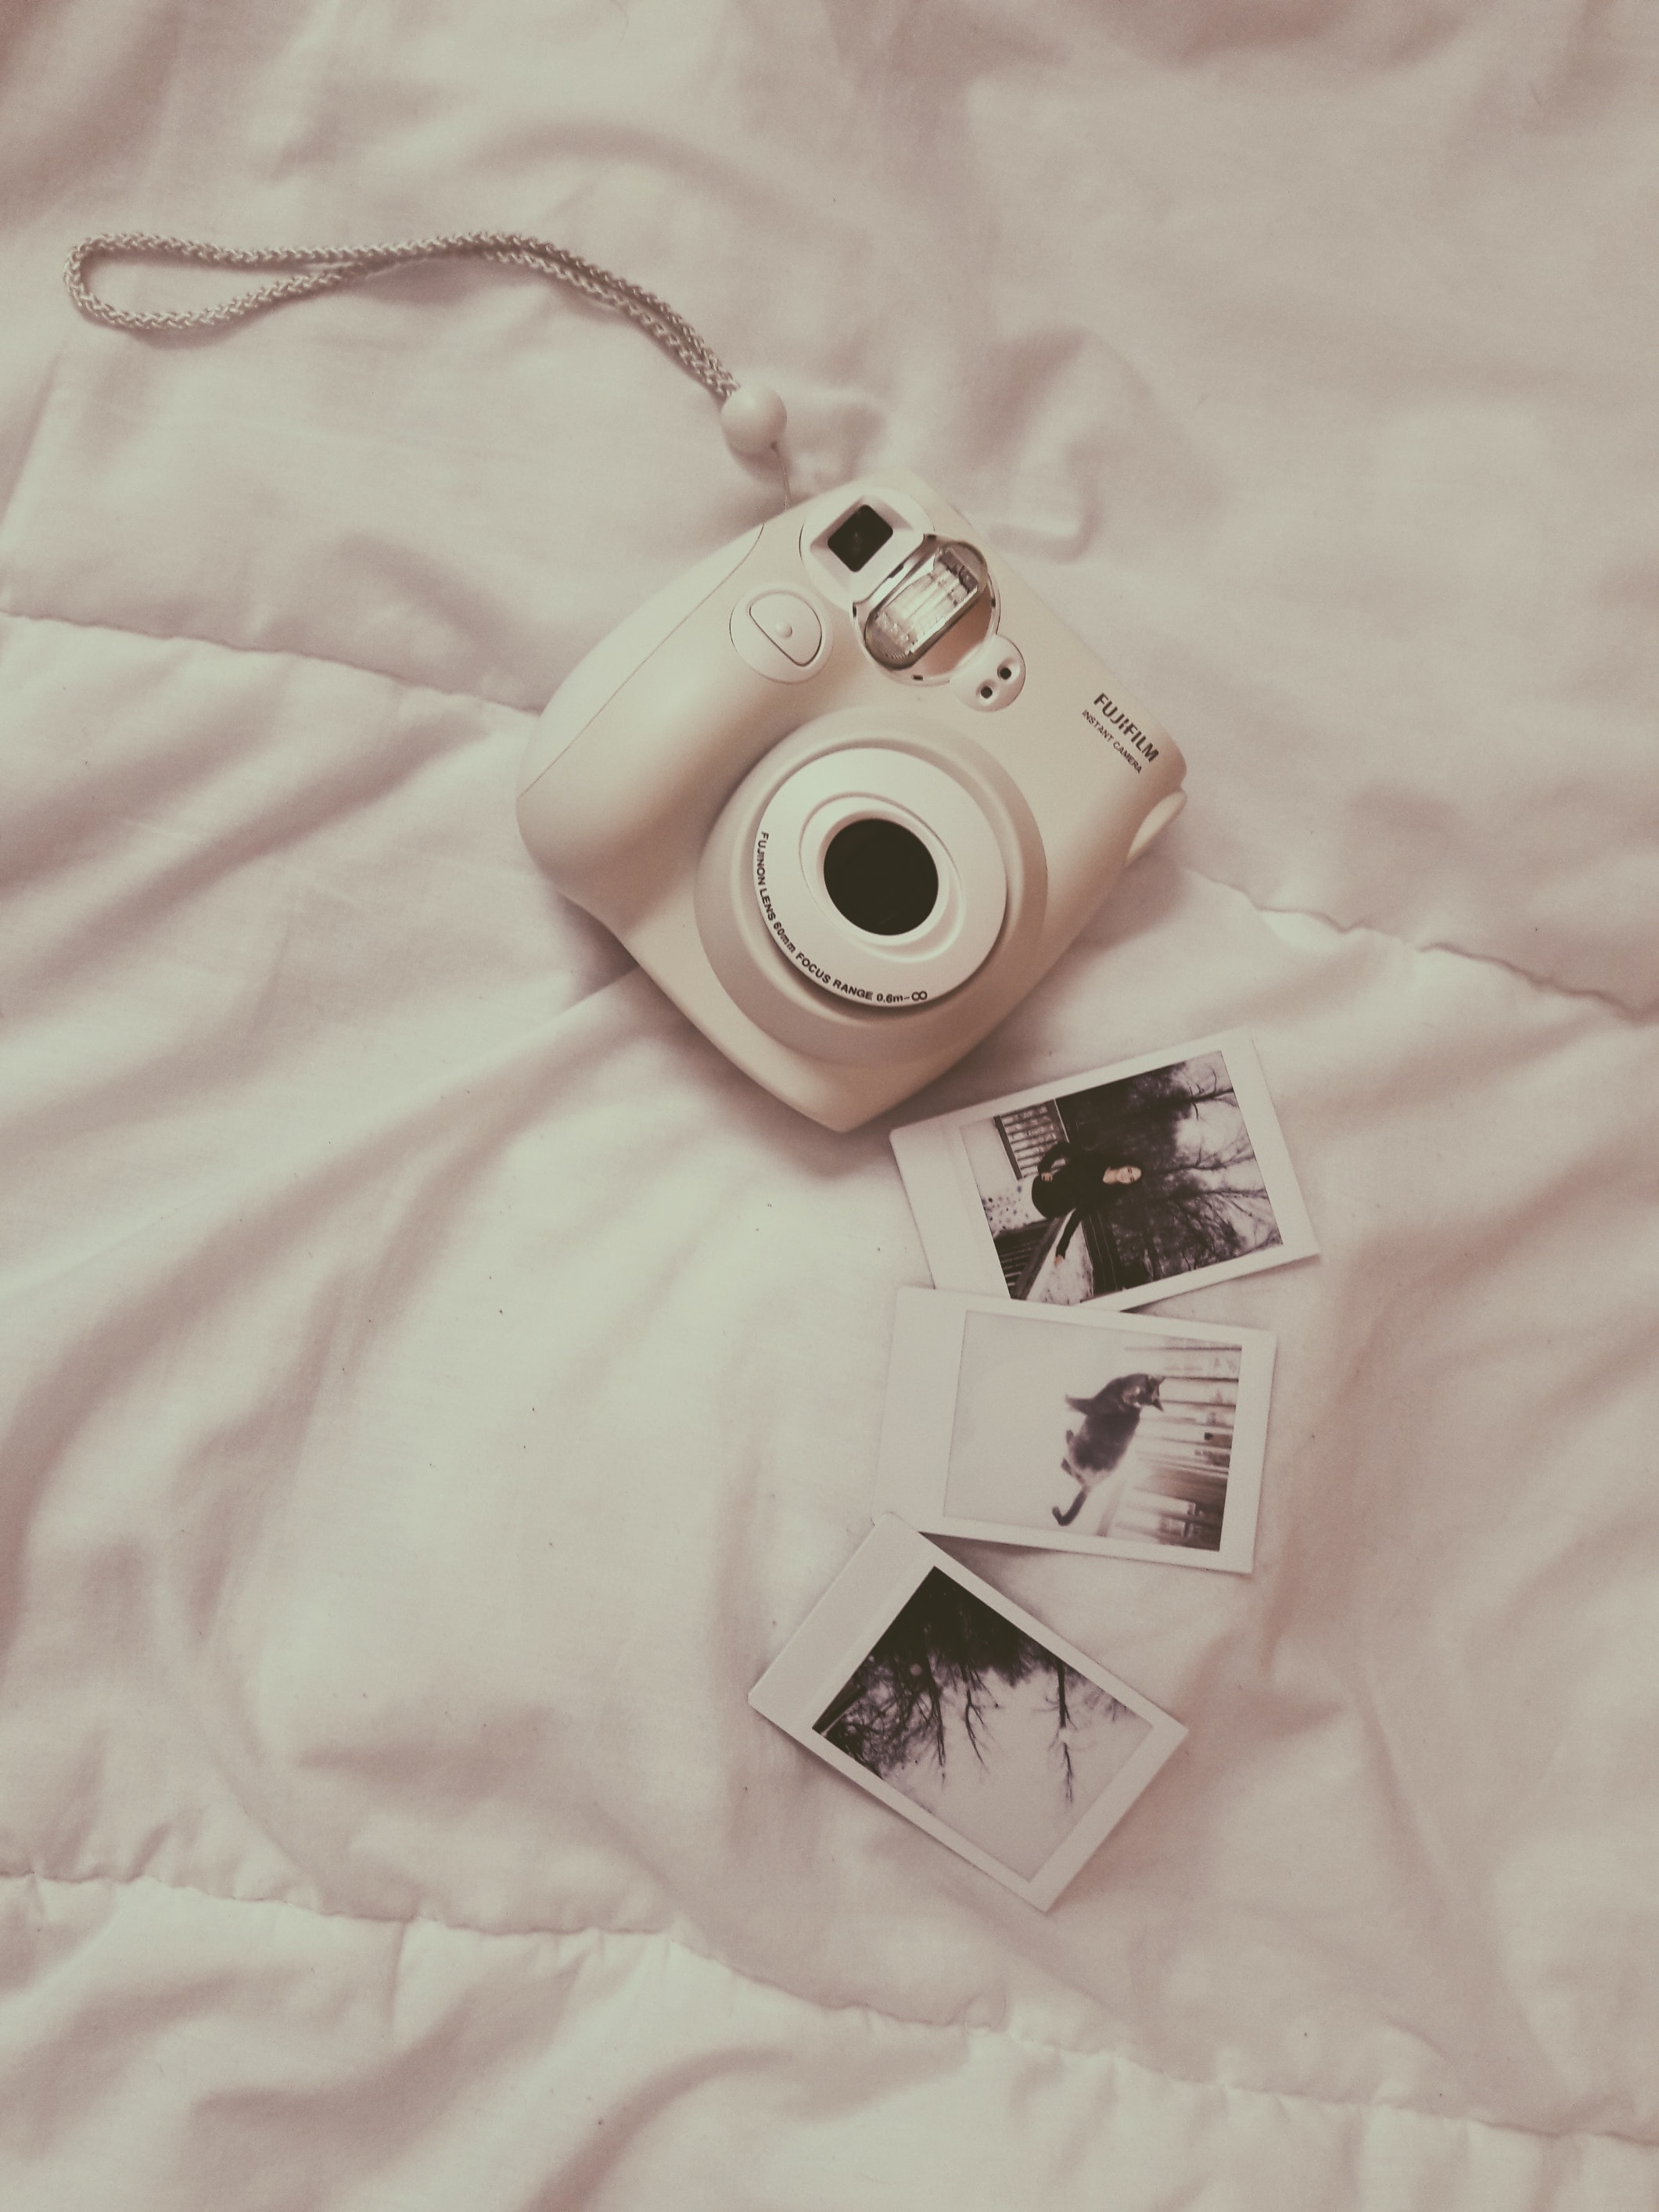 white Fujifilm instant camera on white comforter